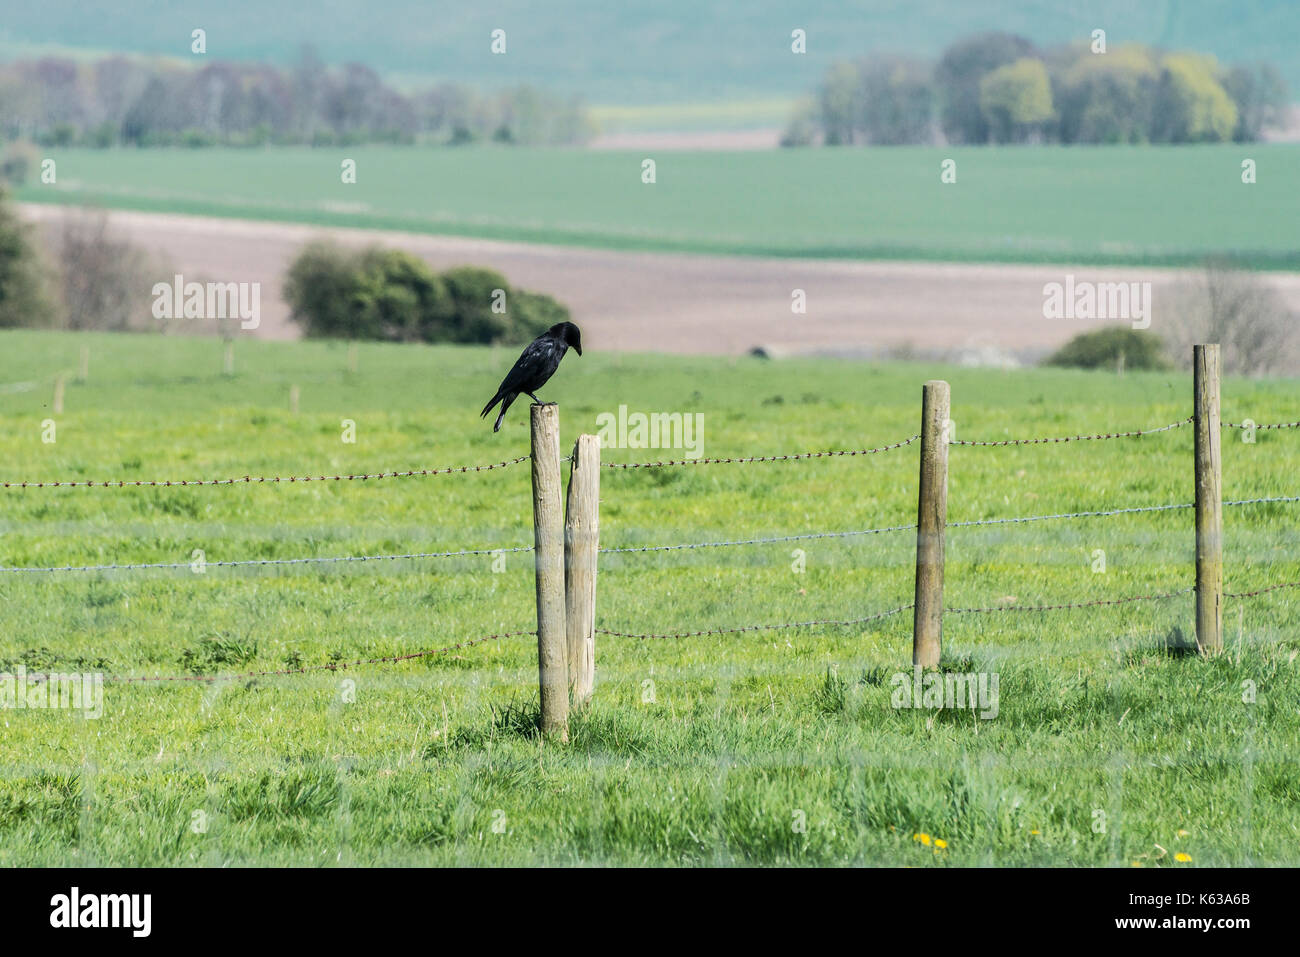 A carrion crow (Corvus corone) perched on a fence post - Stock Image